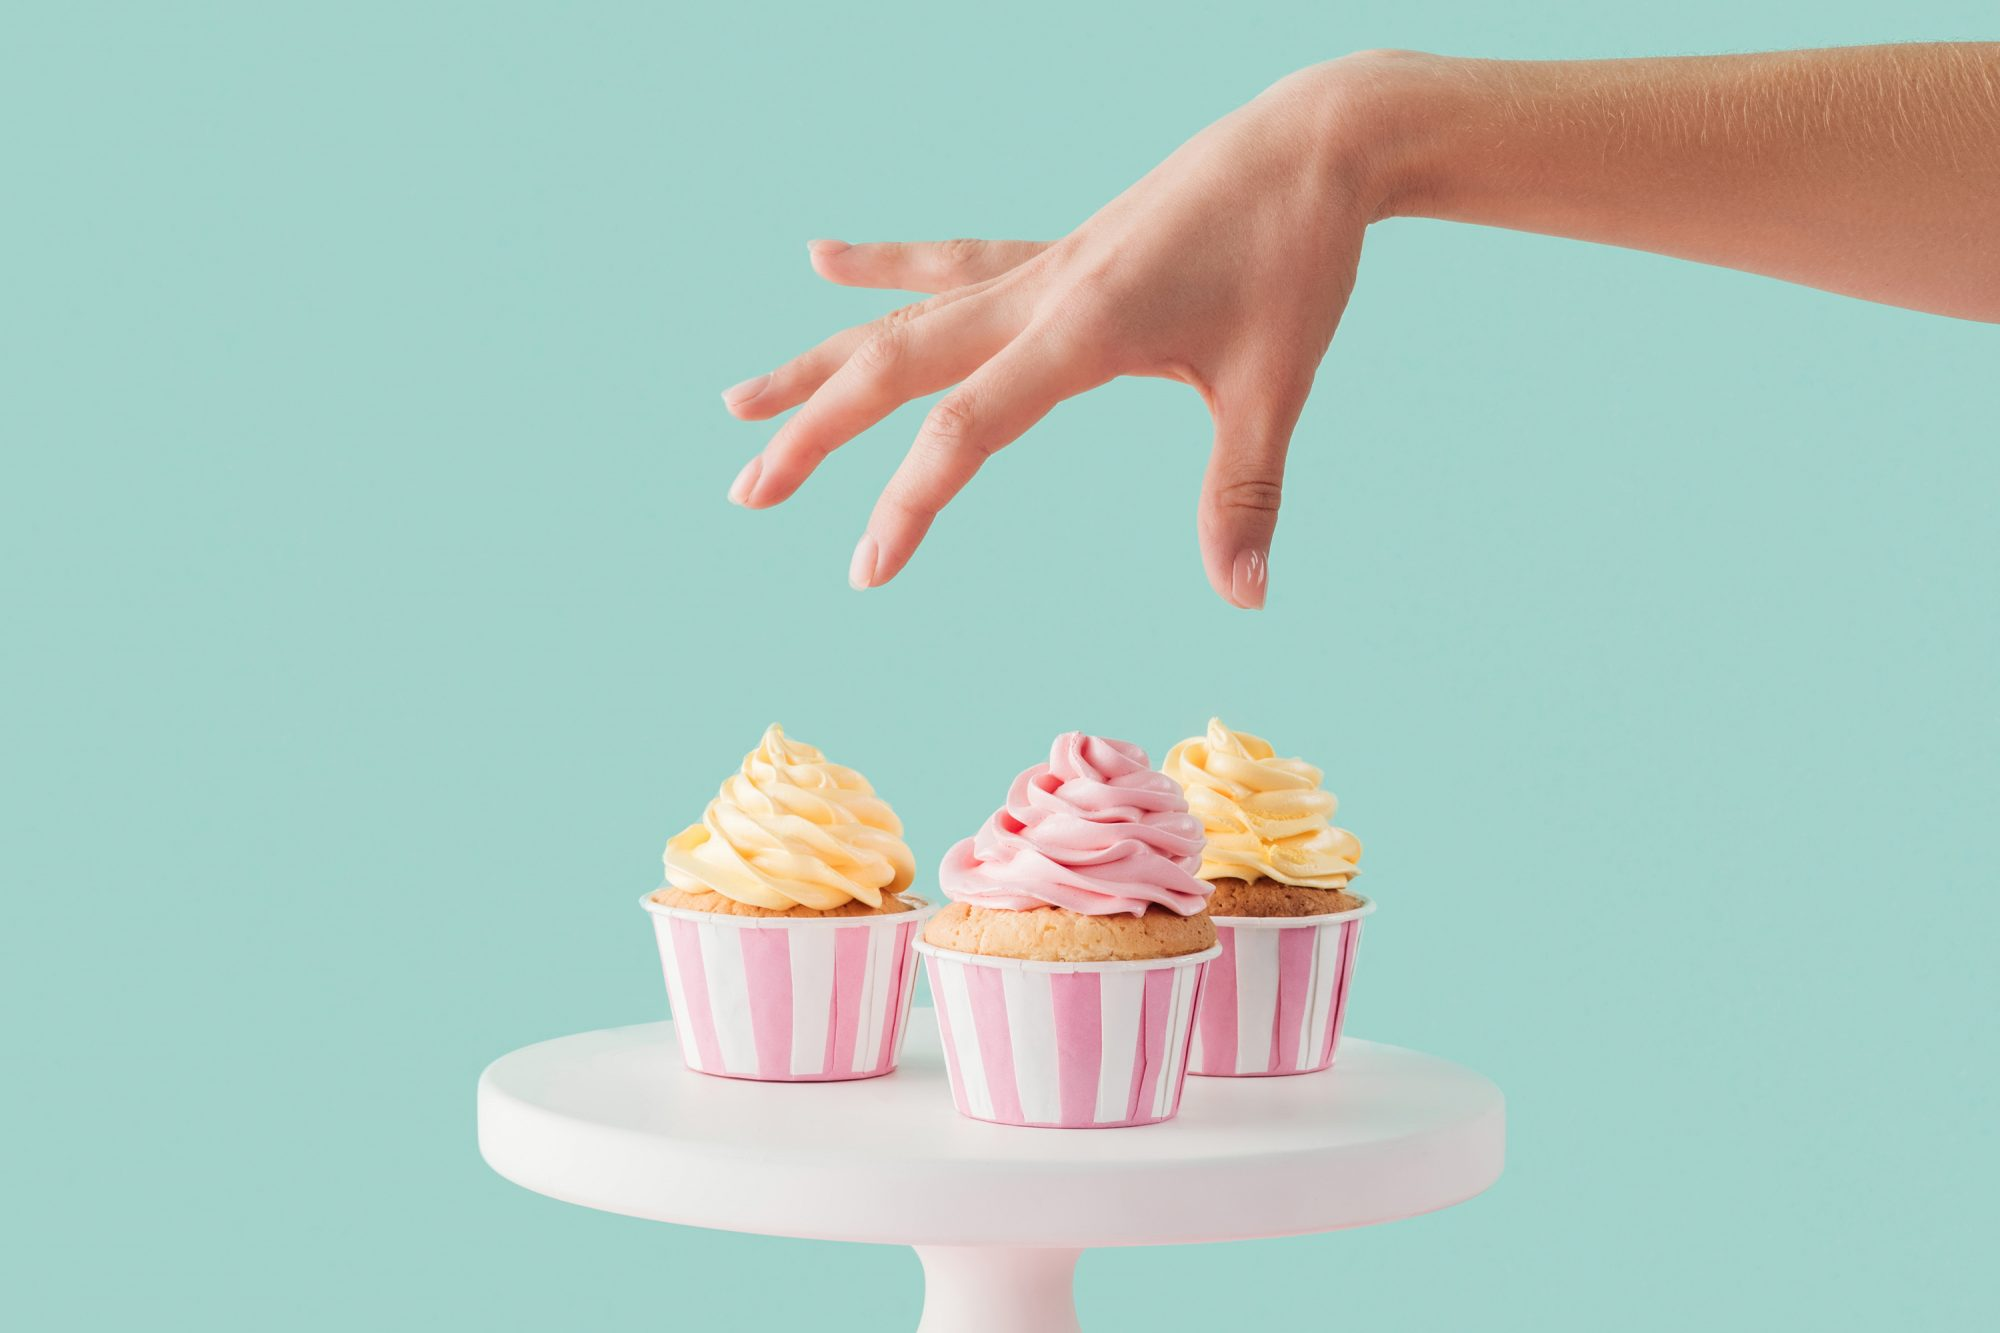 how-to-stop-sugar-cravings: woman reaching for cupcakes